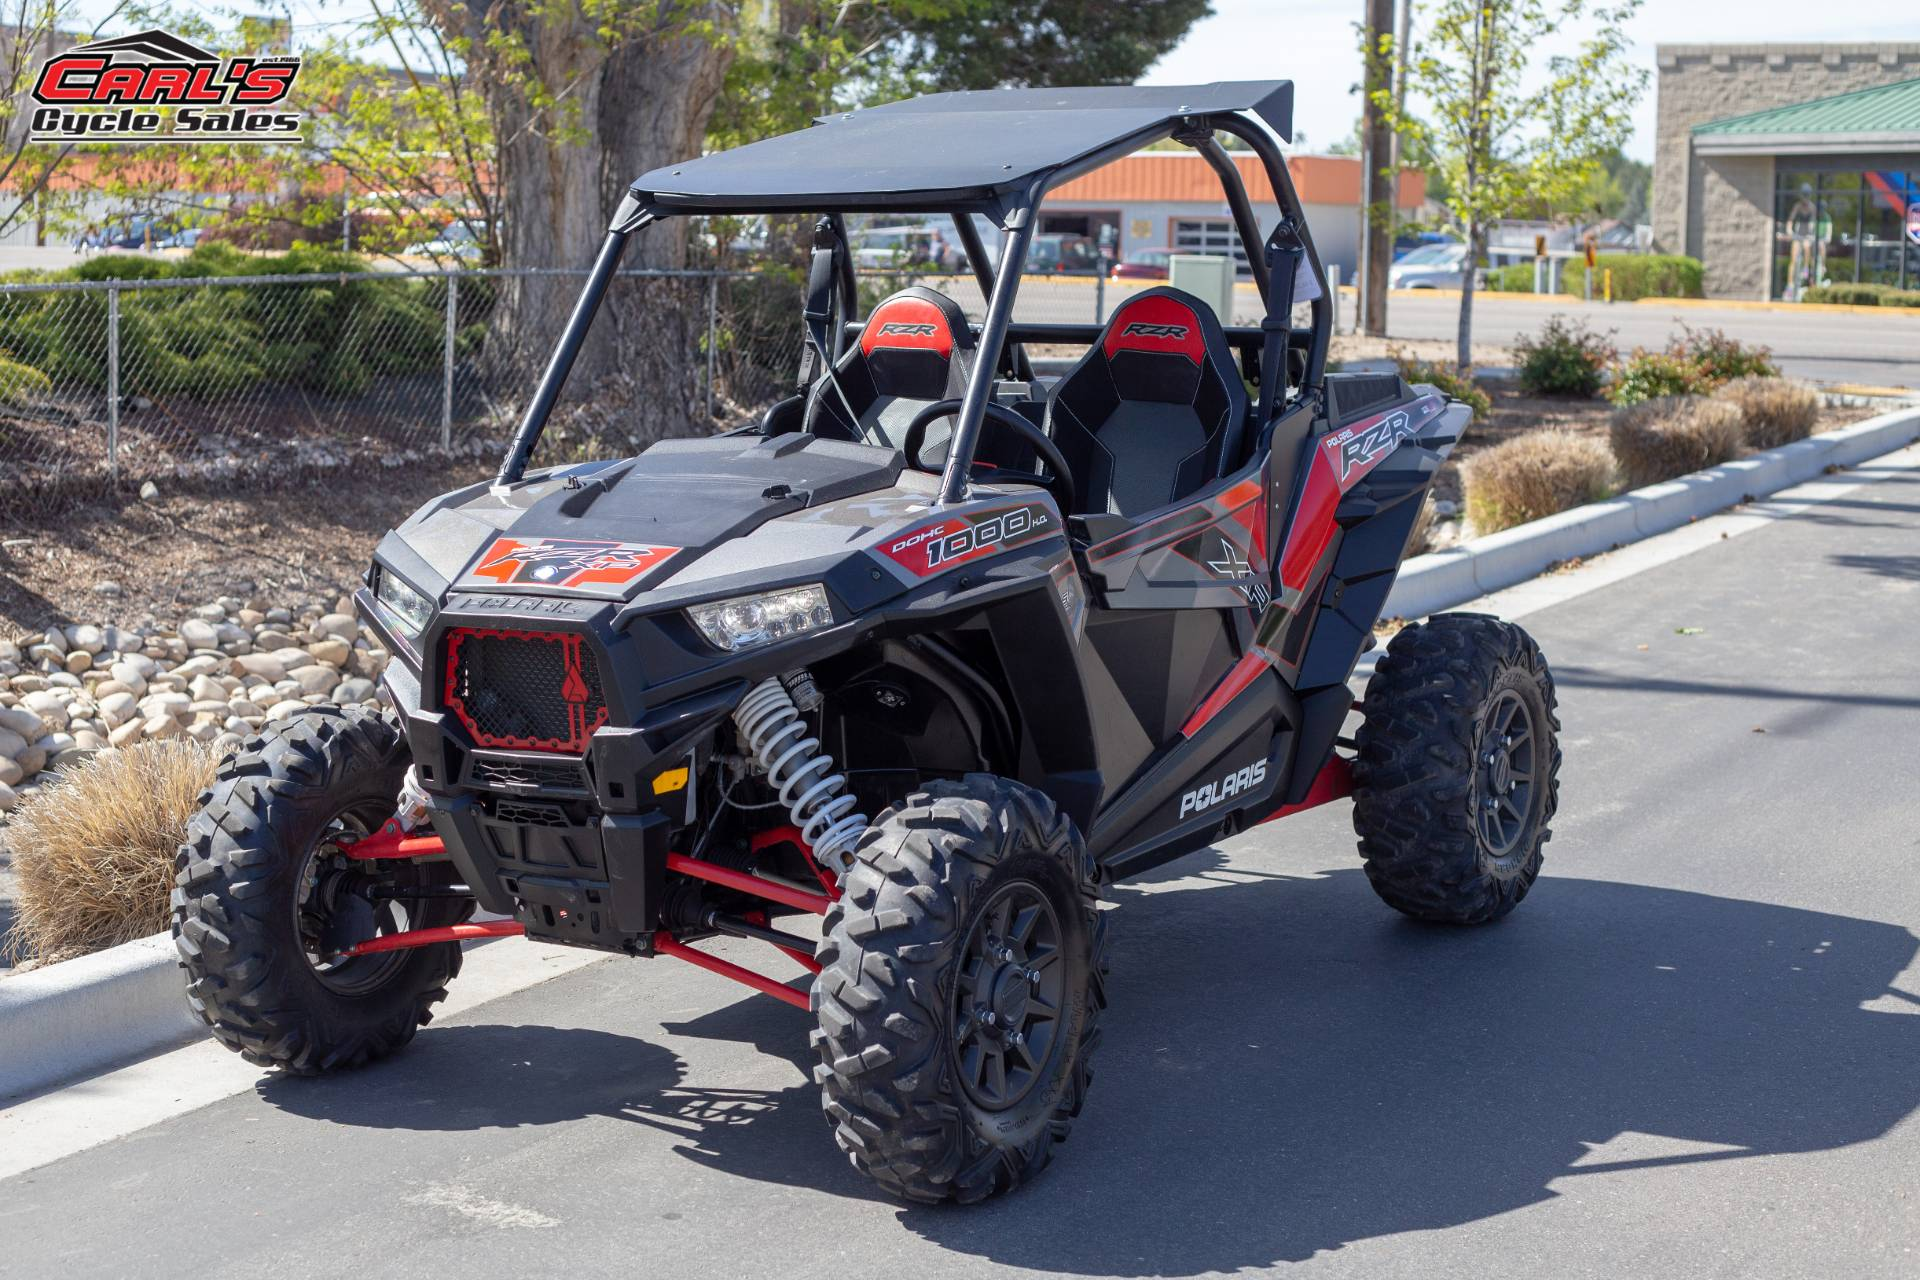 2017 Polaris RZR XP 1000 EPS in Boise, Idaho - Photo 4